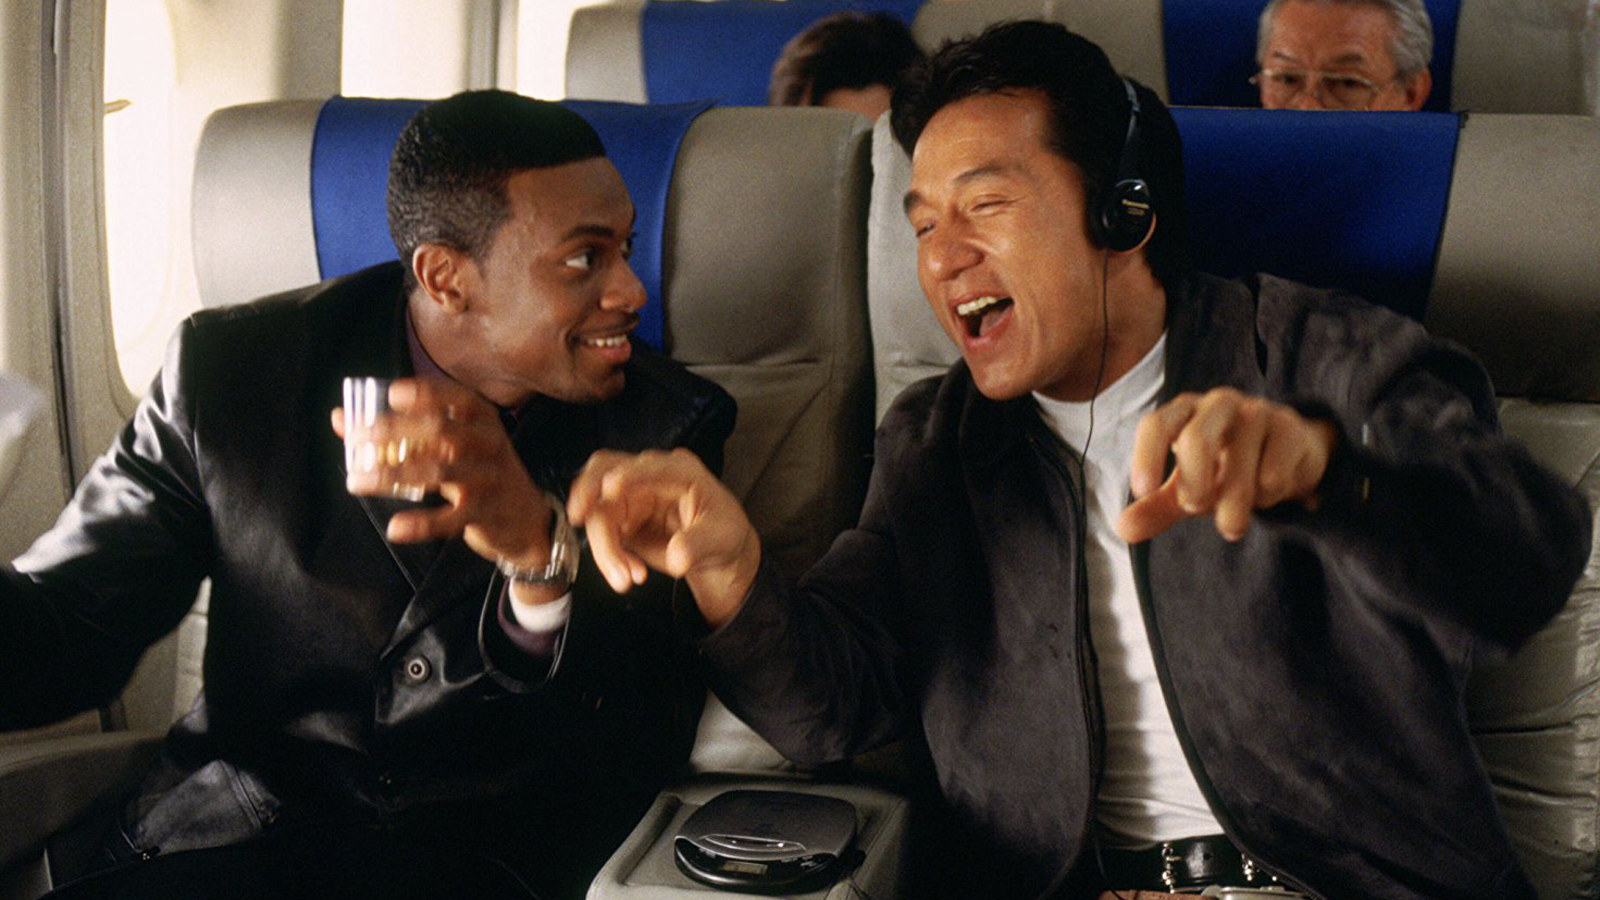 rush hour ISTYA movie review